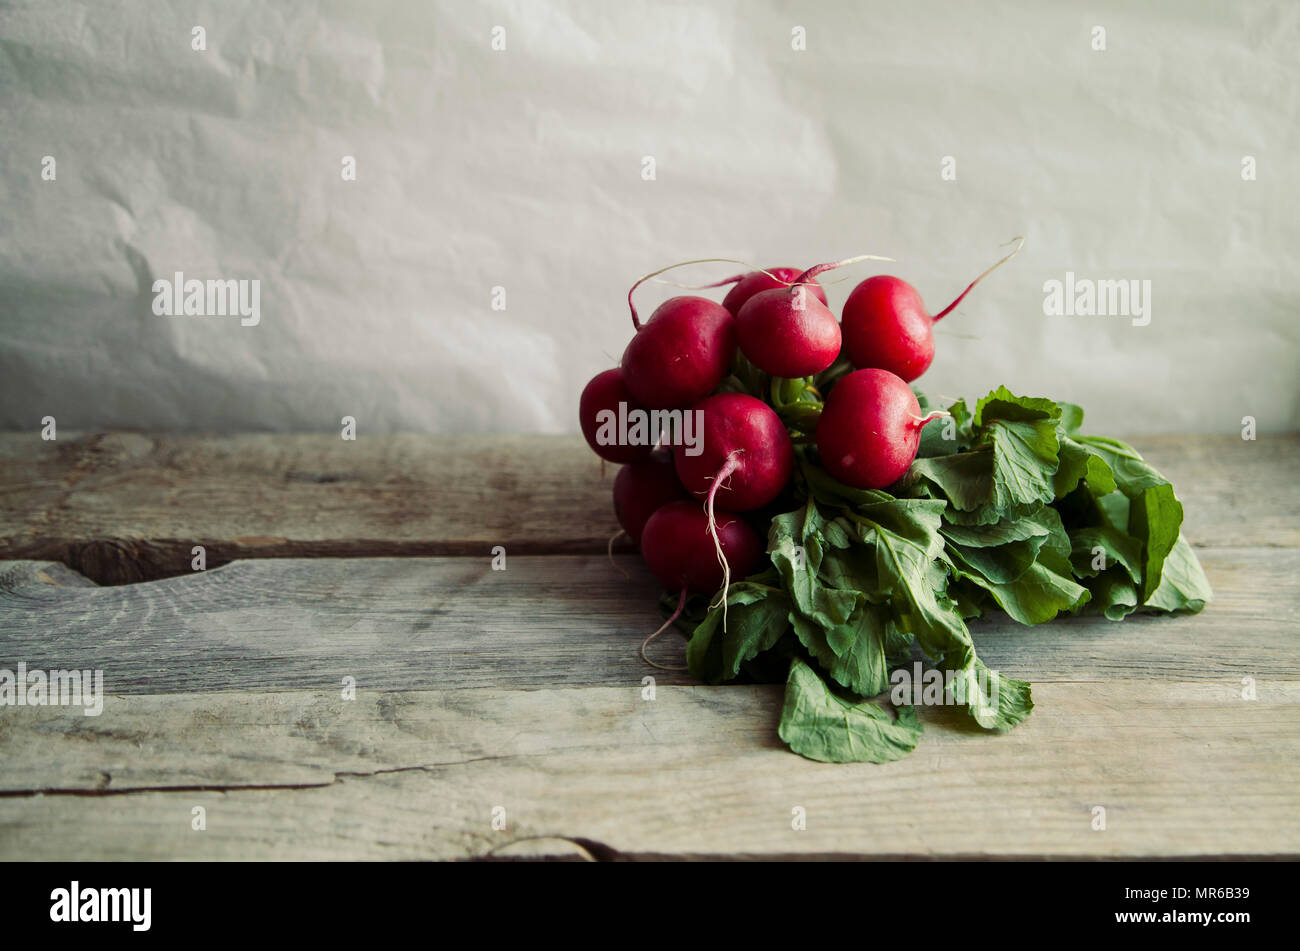 Heap of fresh radishes with tops and leaves on wooden rustic background with copy space - Stock Image